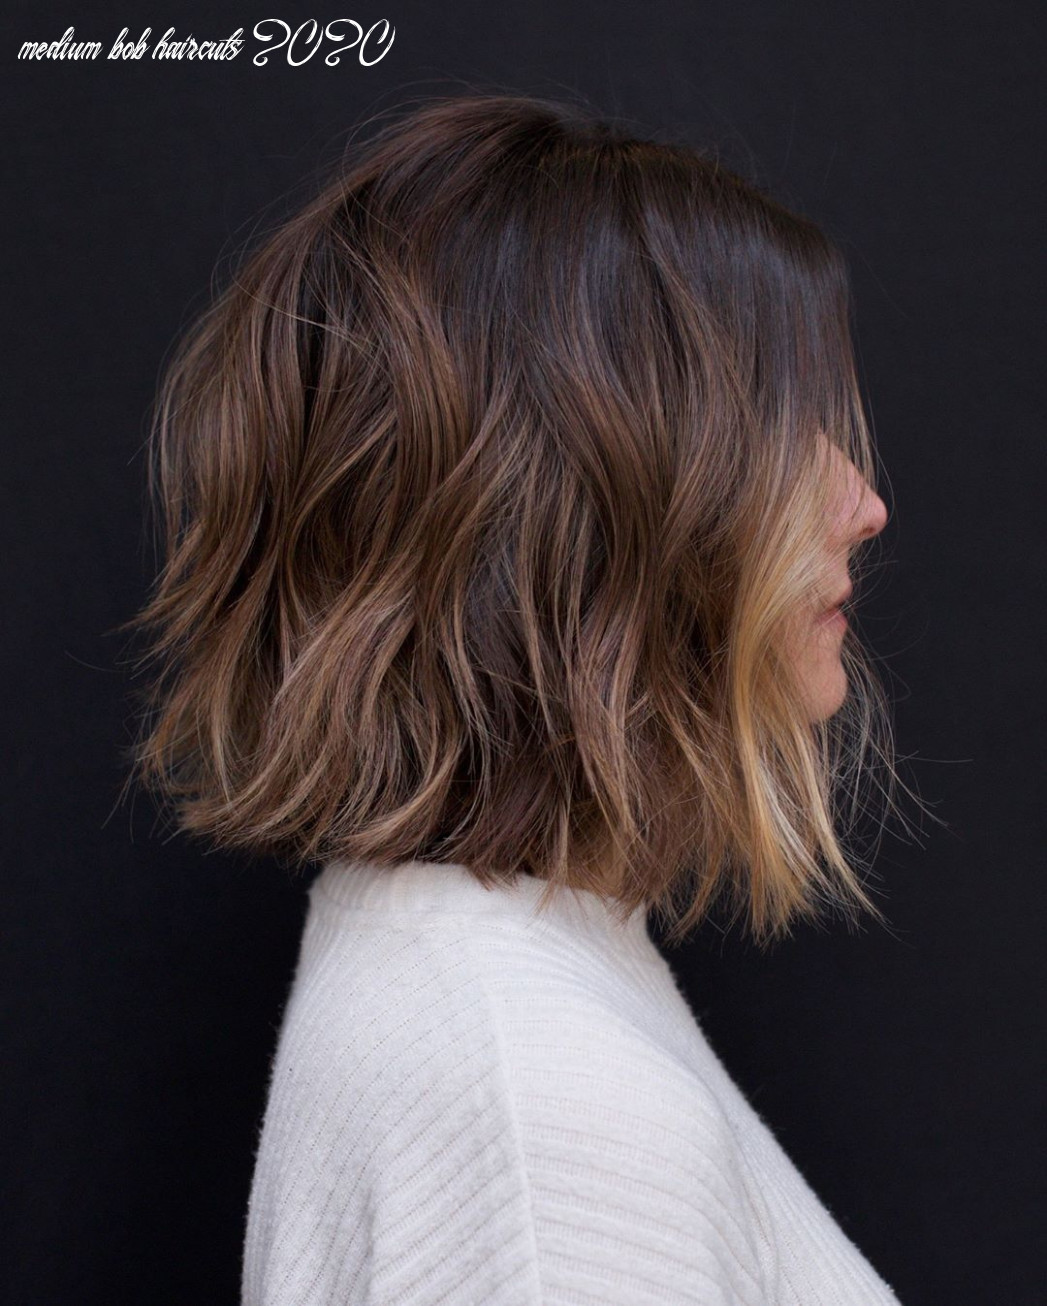 Pin by alexneetu kathait on hair styling and make up in 9 (with